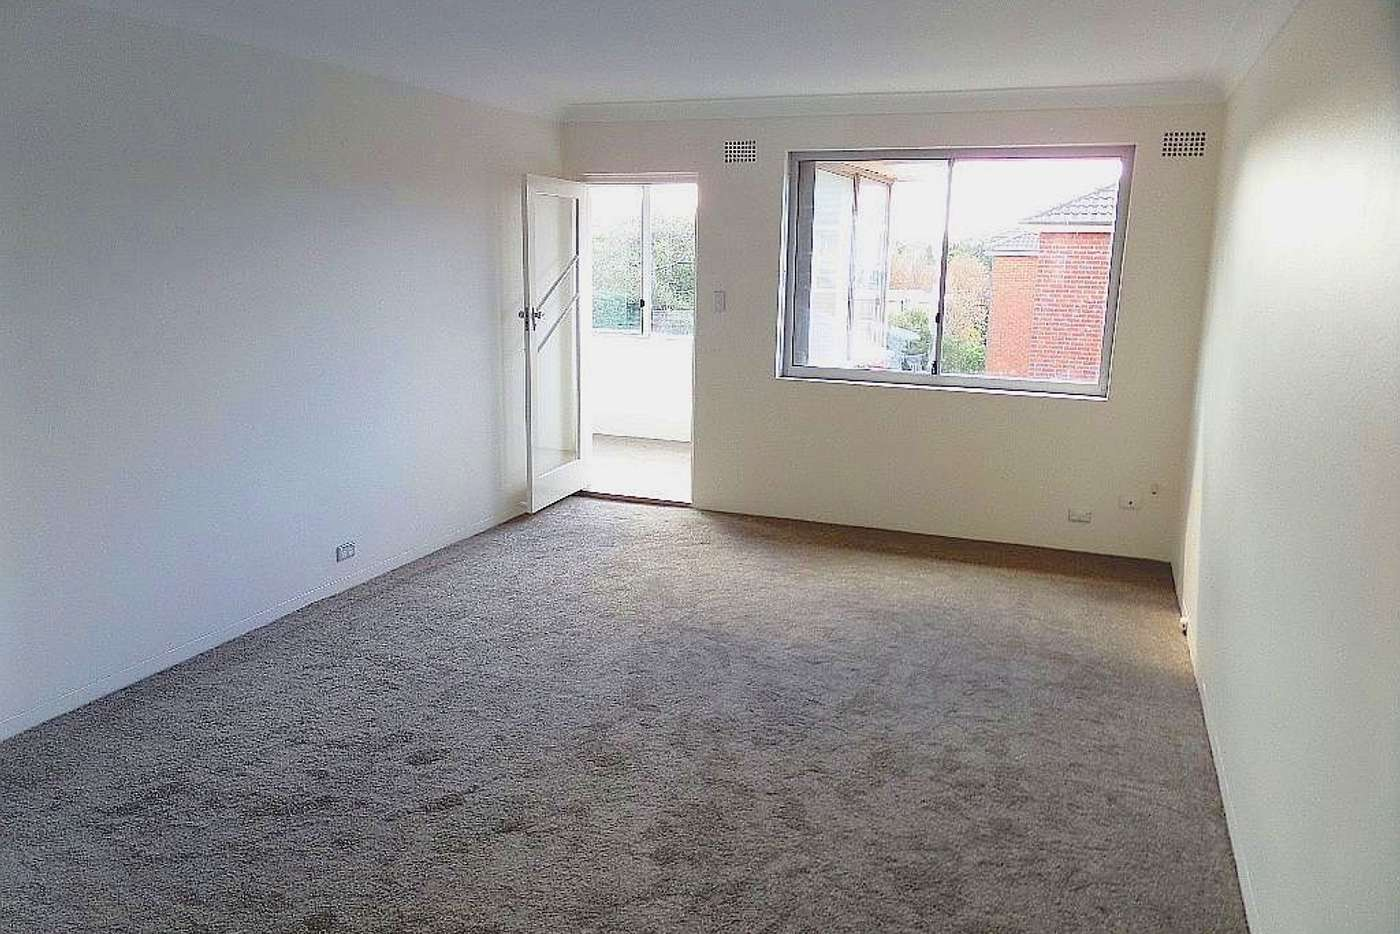 Main view of Homely apartment listing, 12/12 Botany Street, Randwick NSW 2031